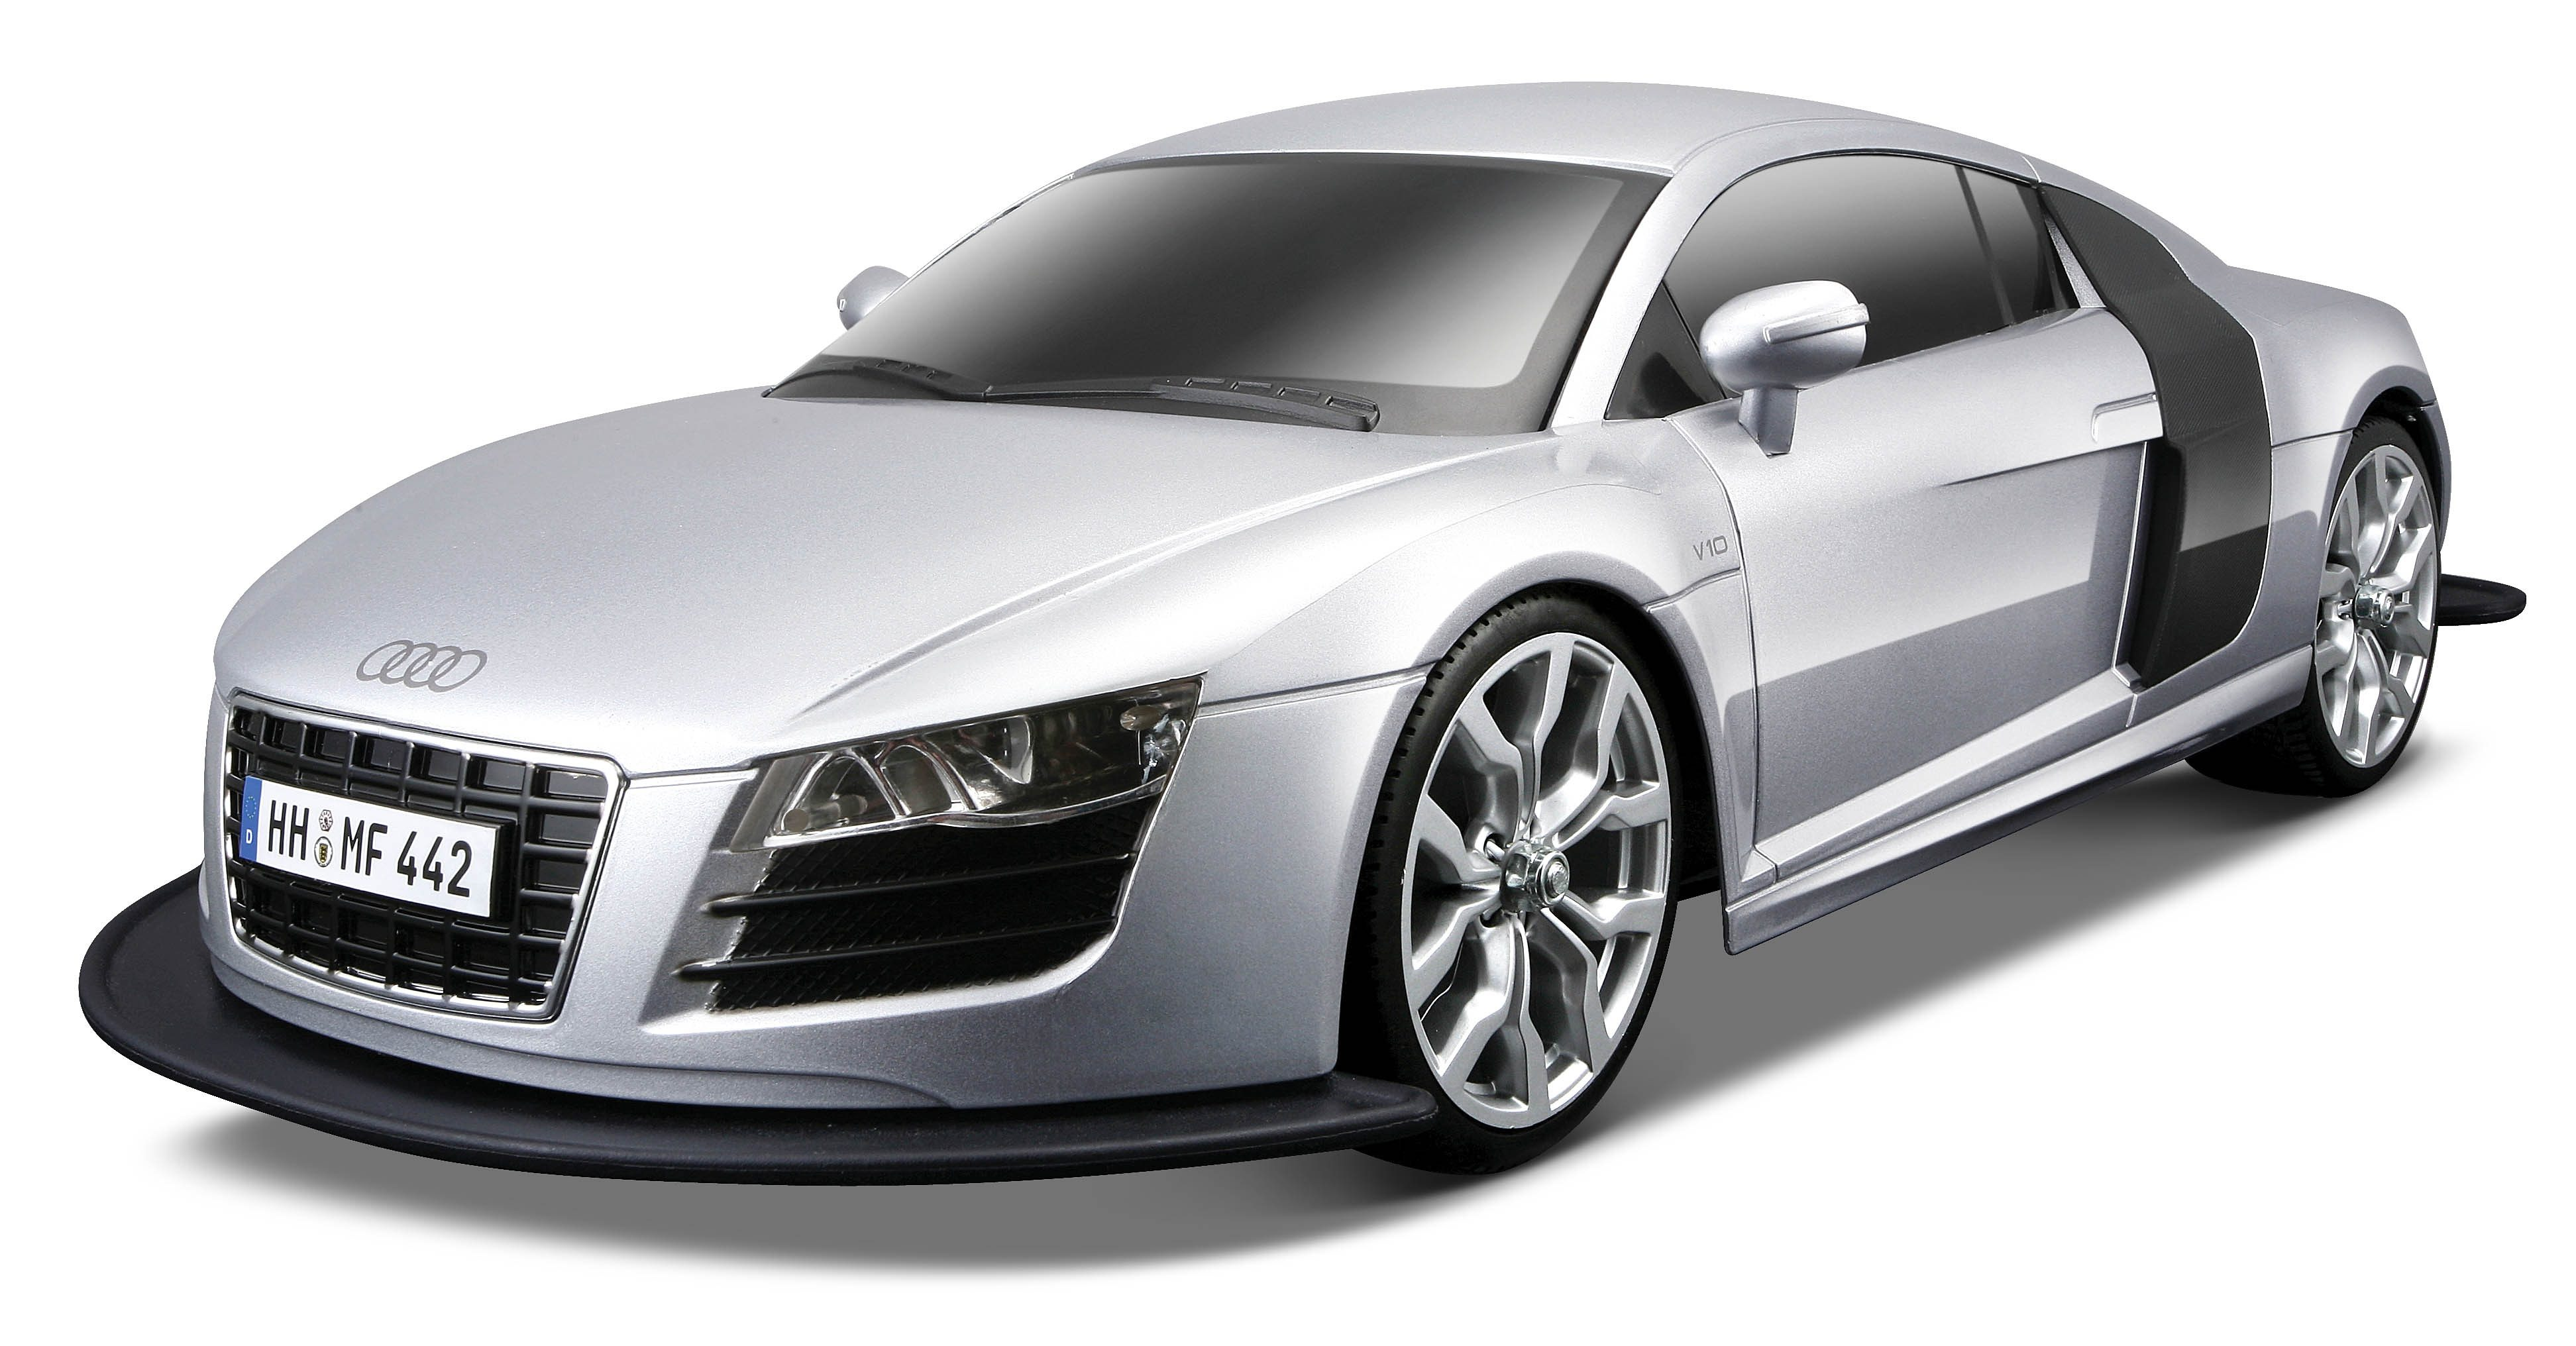 Maisto Tech® RC-Komplett-Set, »Audi R8 V10 2009«